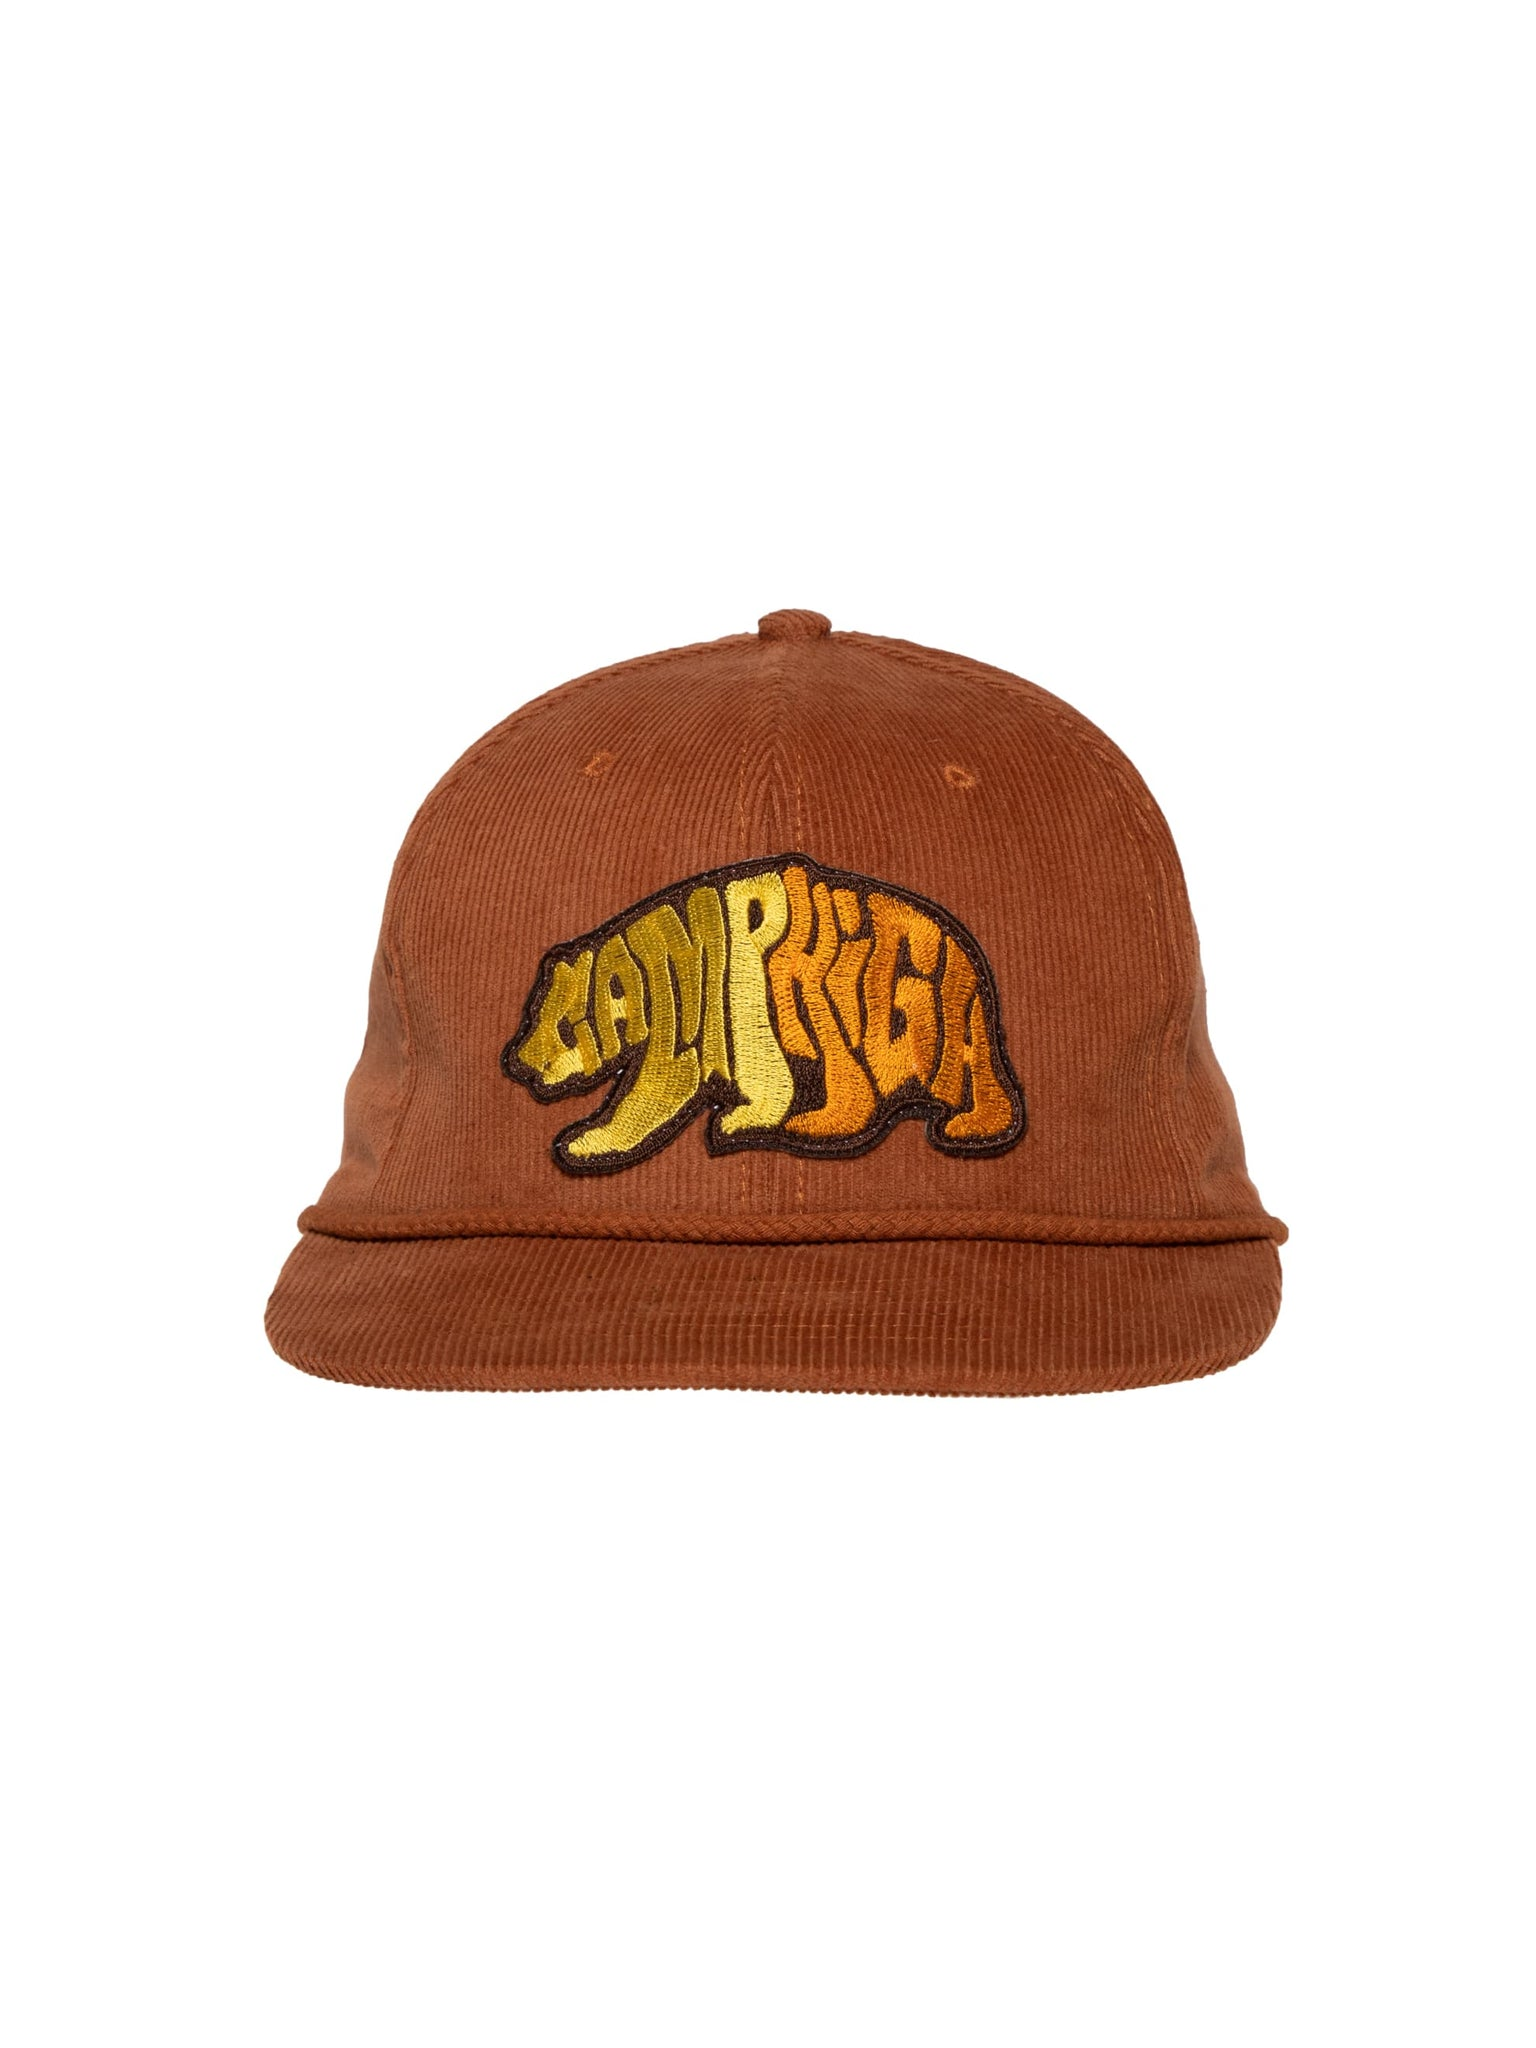 Camp High Brown Cali Bear Cord Cap